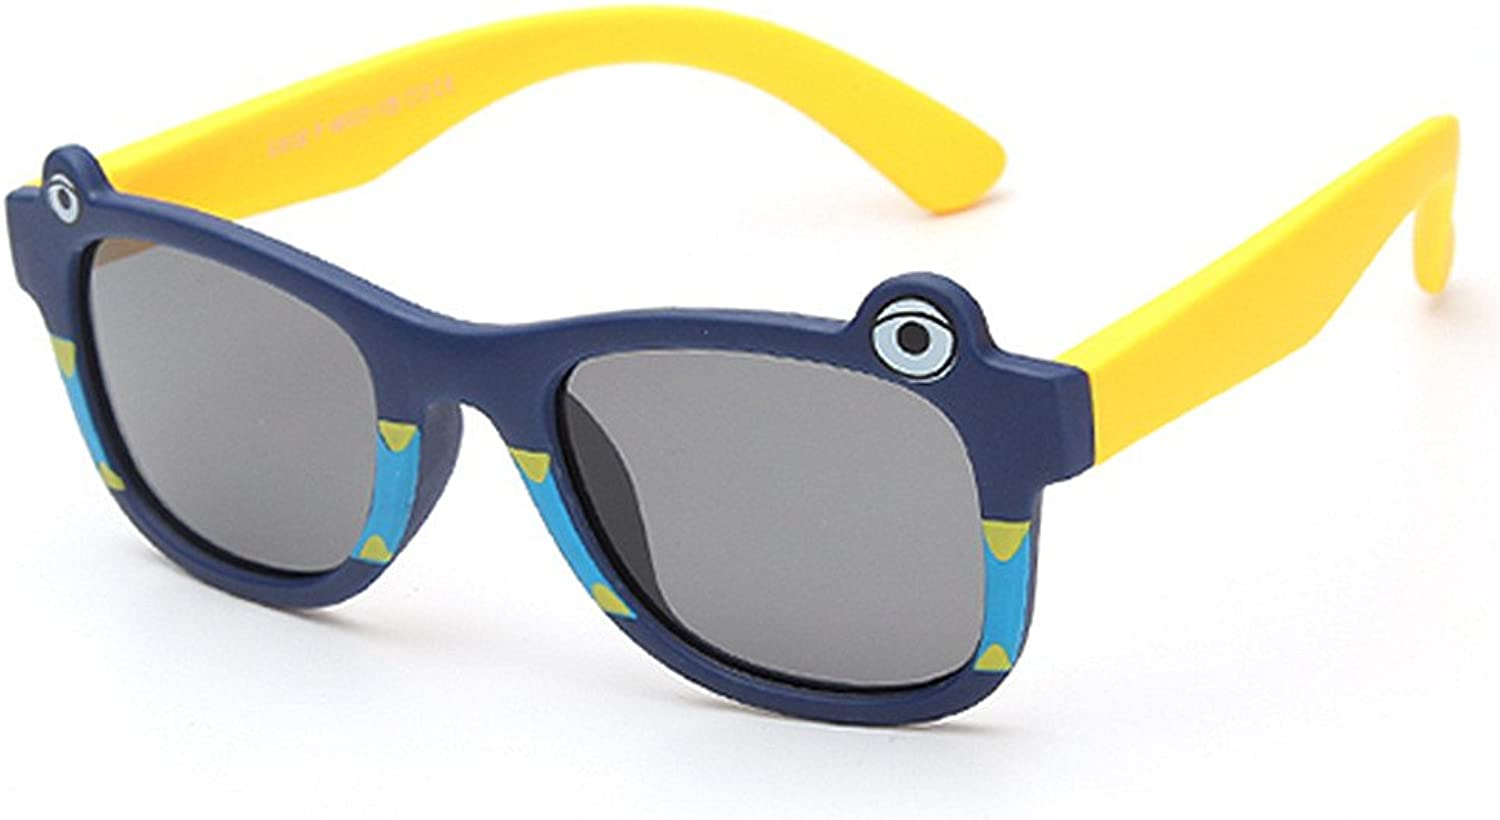 Cute Cartoon Shark Design Flexible Kids Sunglasses Polarized Lenses UV Predection Boys and Girls Age 3 to 12 with Gift Box (color   C12)